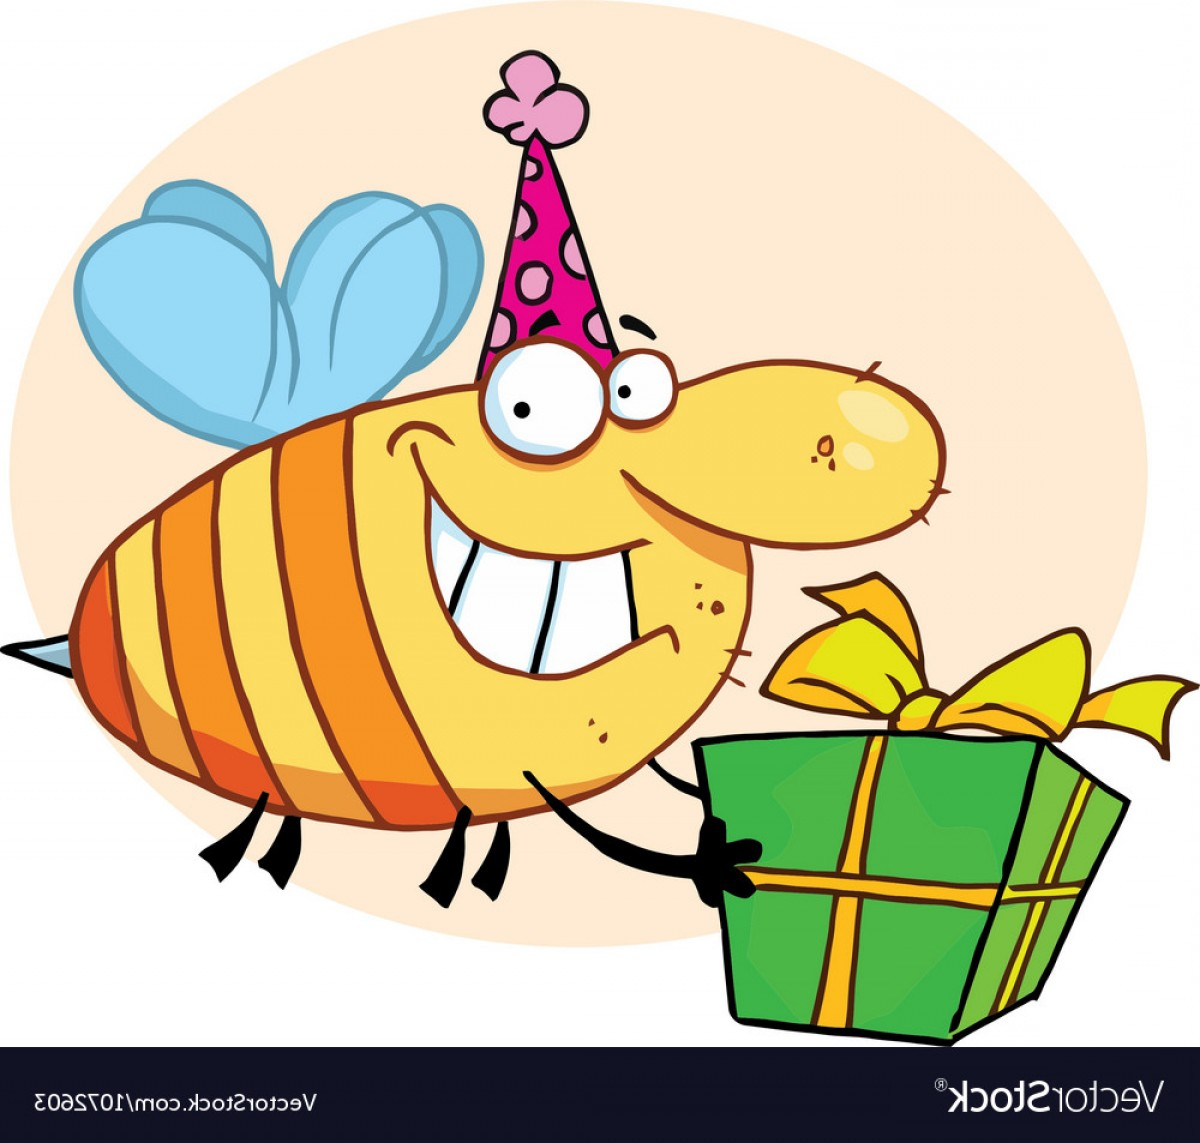 Bee Stinger Back Vector Art: Grinning Bumbe Bee With A Stinger Vector